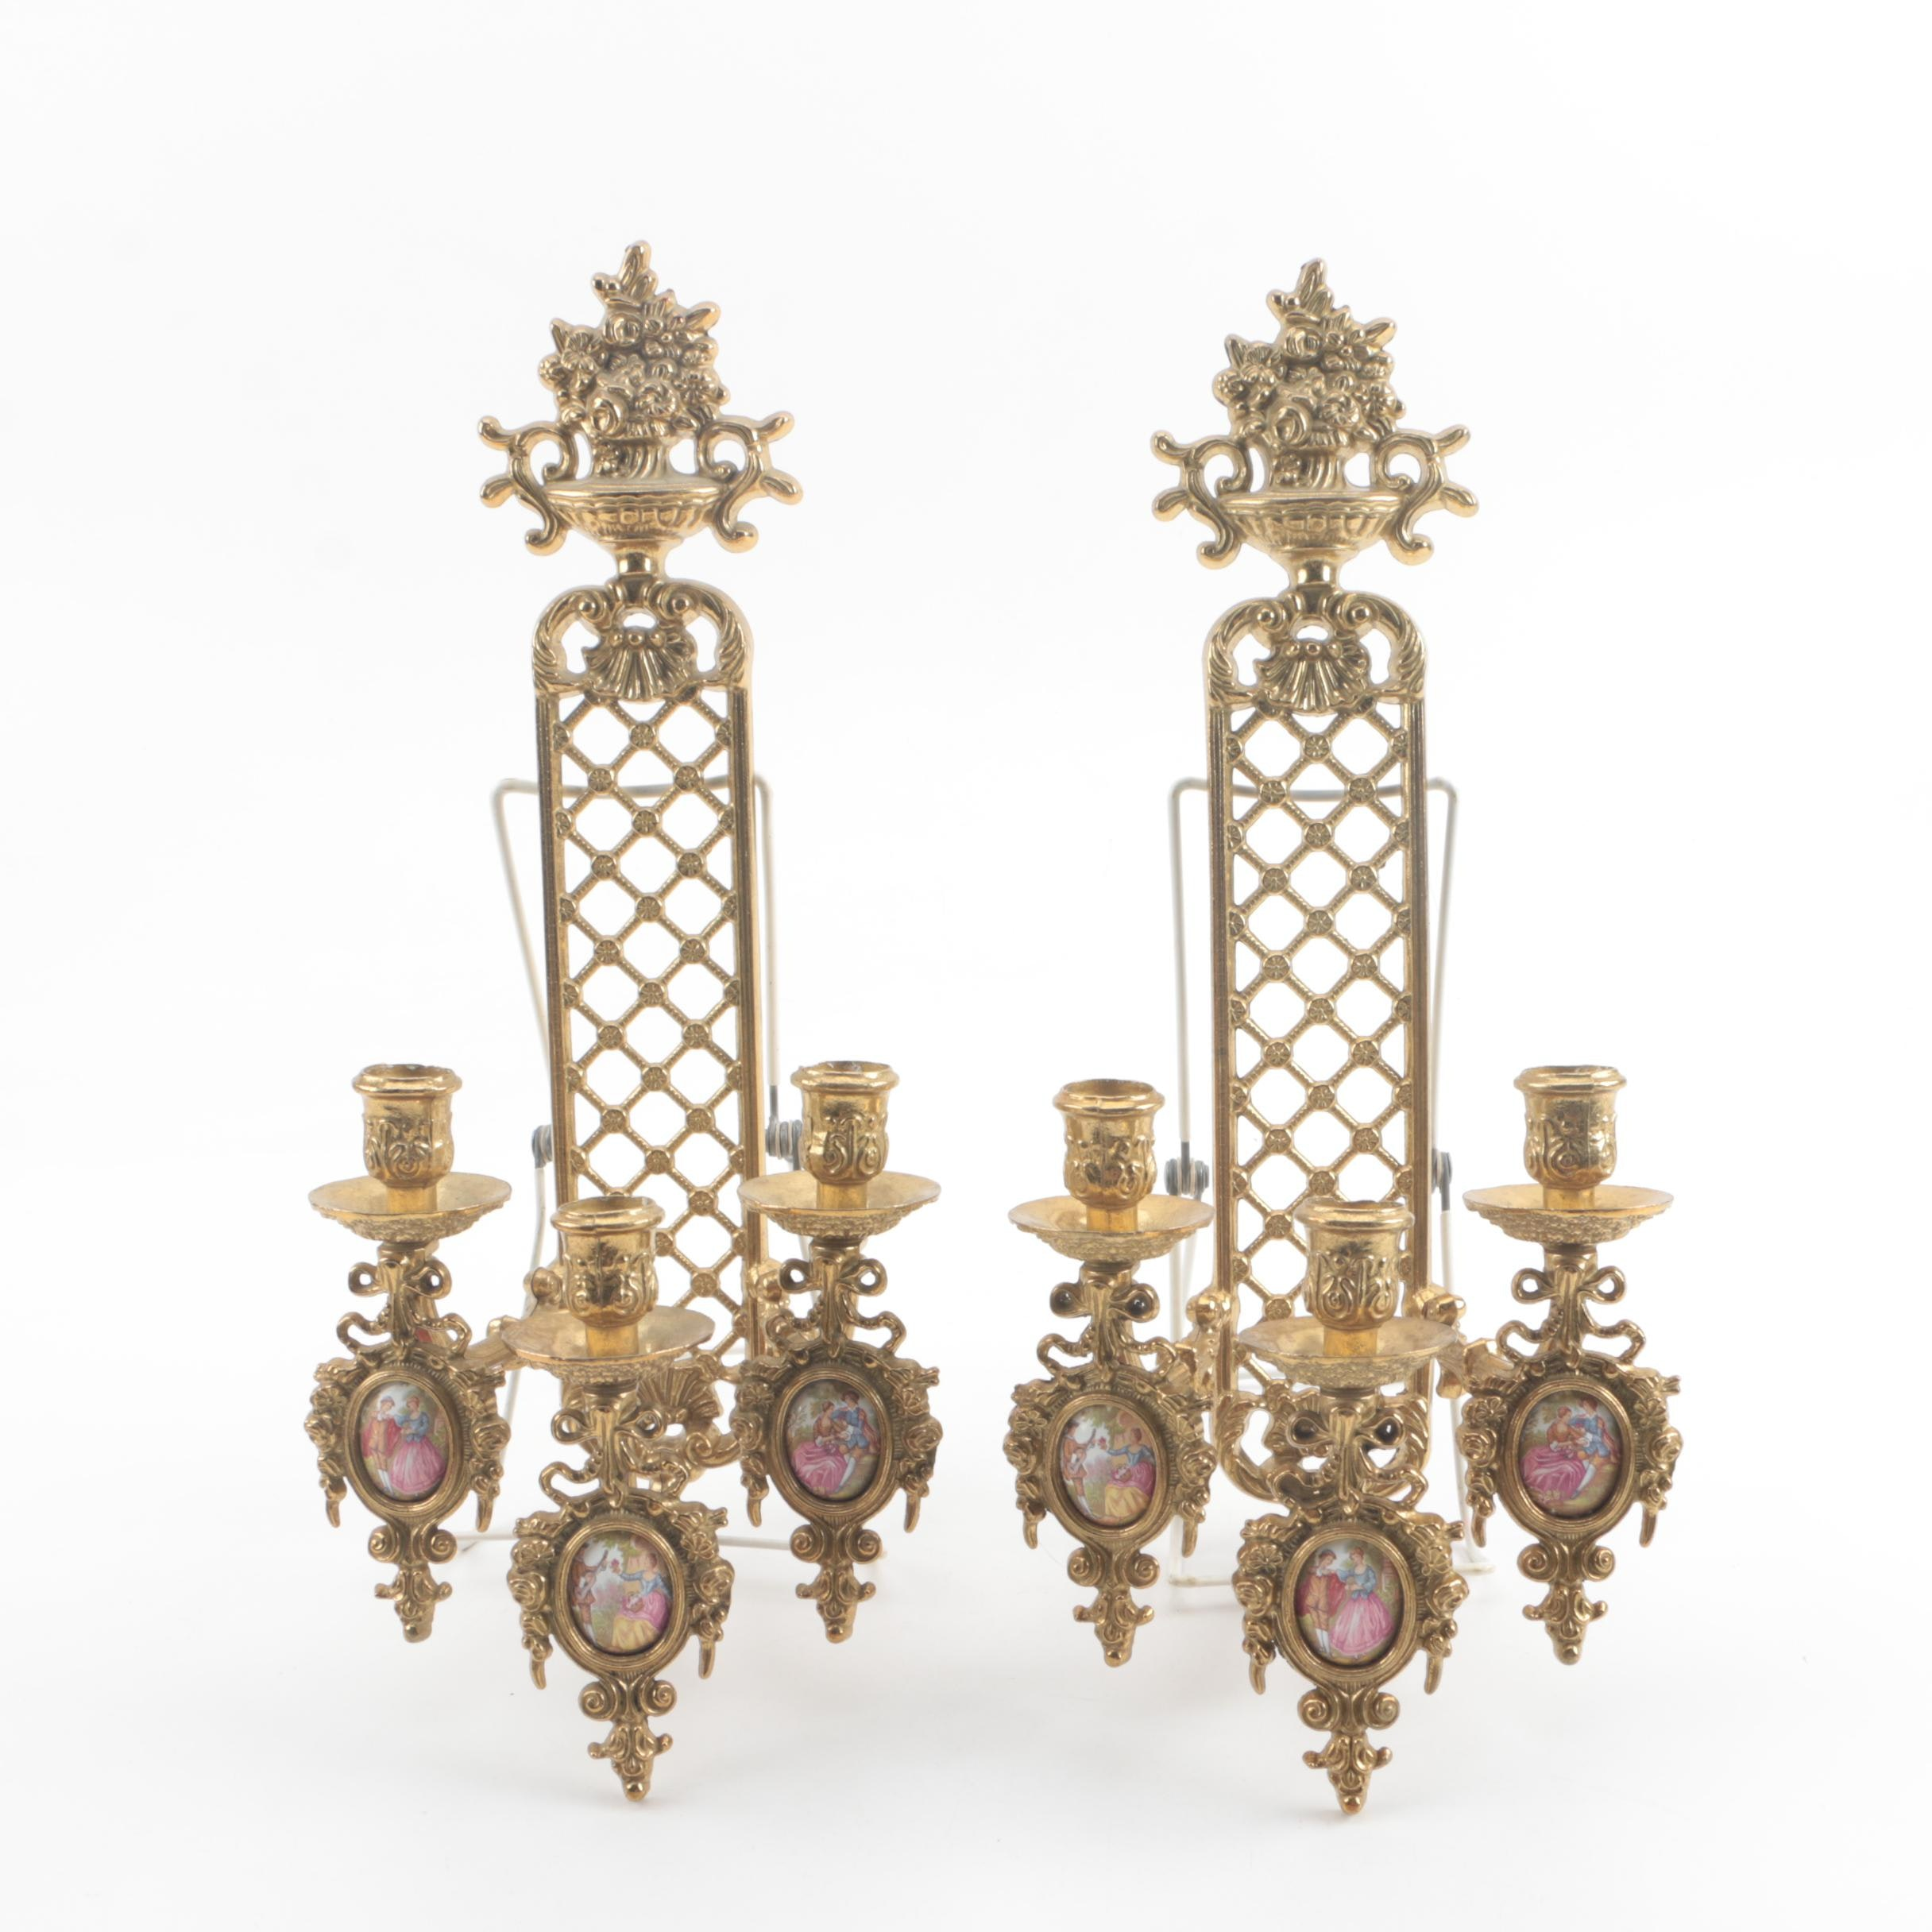 Italian Rococo Style Cast Metal and Fragonard Style Porcelain Candle Sconces